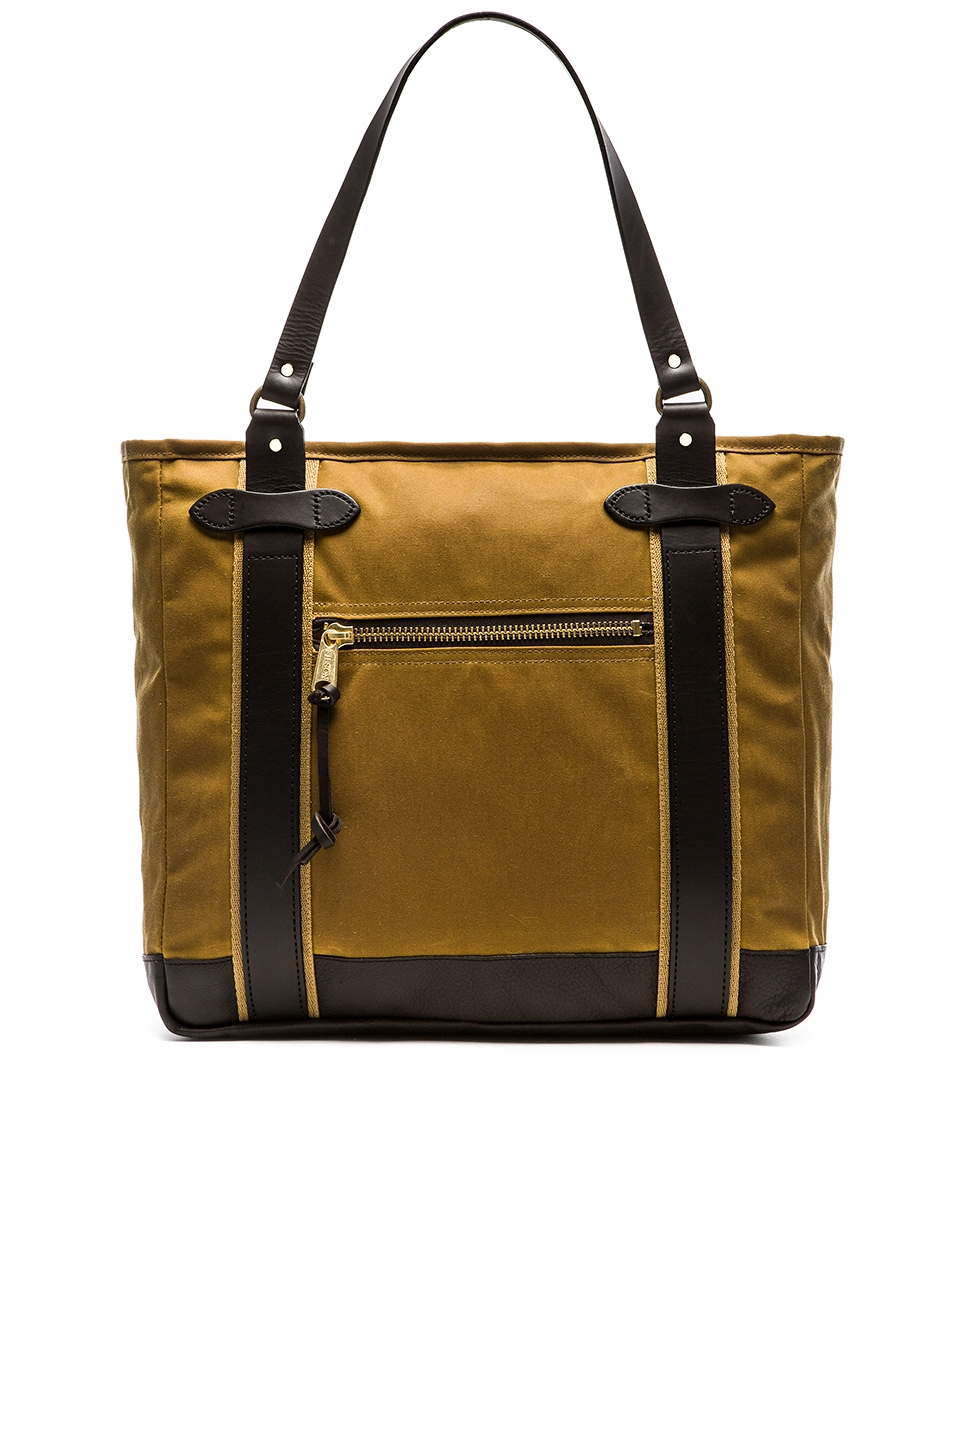 Photo of Meridian Tote by Filson men clothes